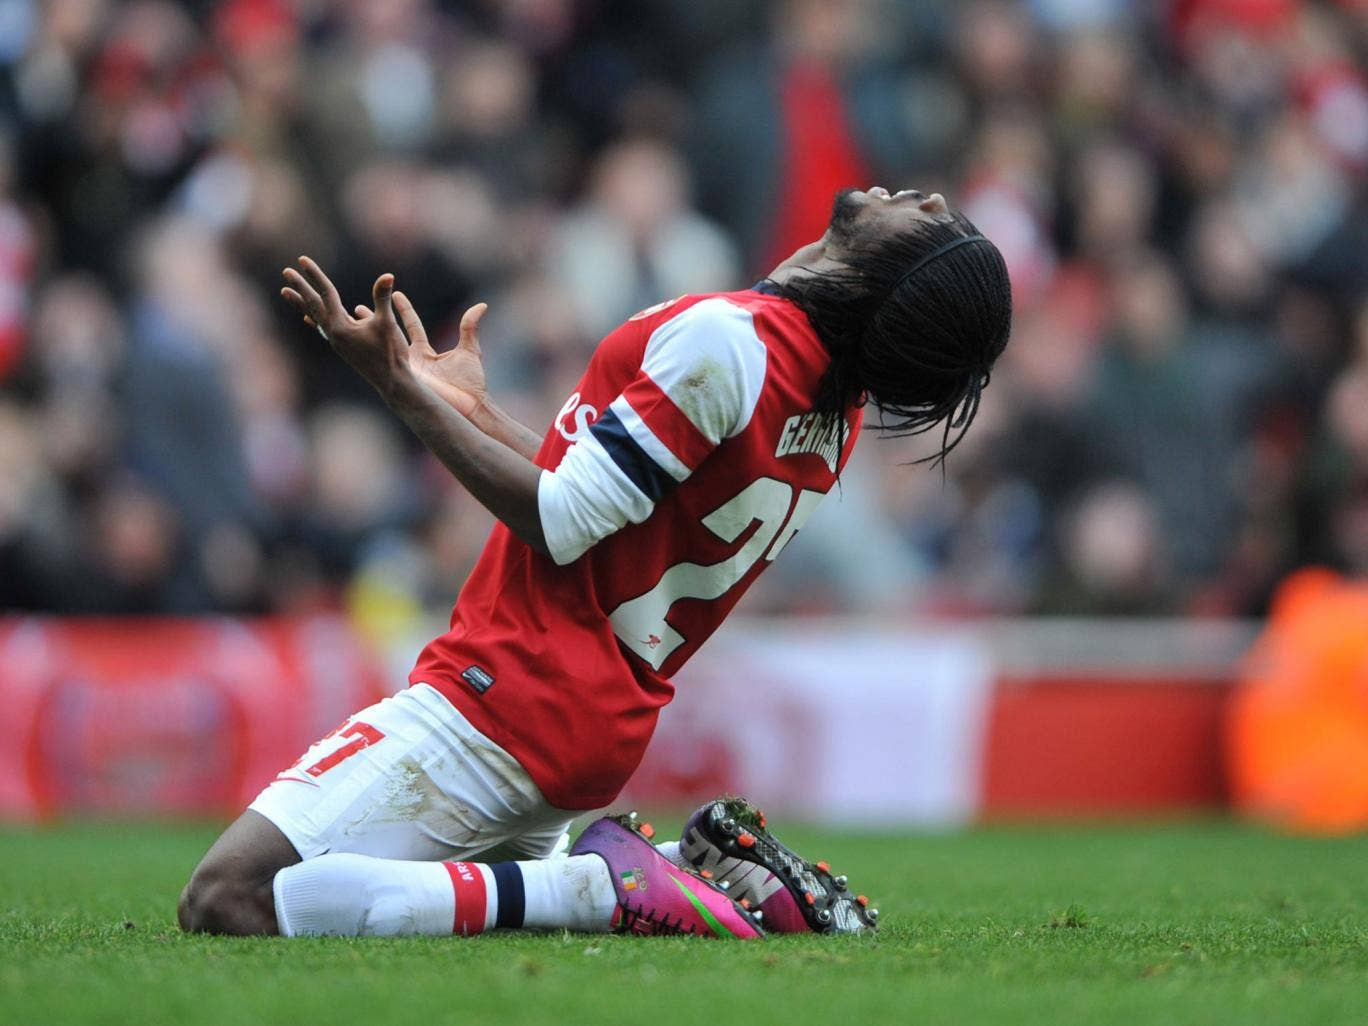 <b>Arsenal 0-1 Blackburn</b><br/>Rover and out: Gervinho shows his frustration after missing a glorious chance for Arsenal during their surprise 1-0 FA Cup fifth-round defeat against Blackburn Rovers at Emirates Stadium yesterday